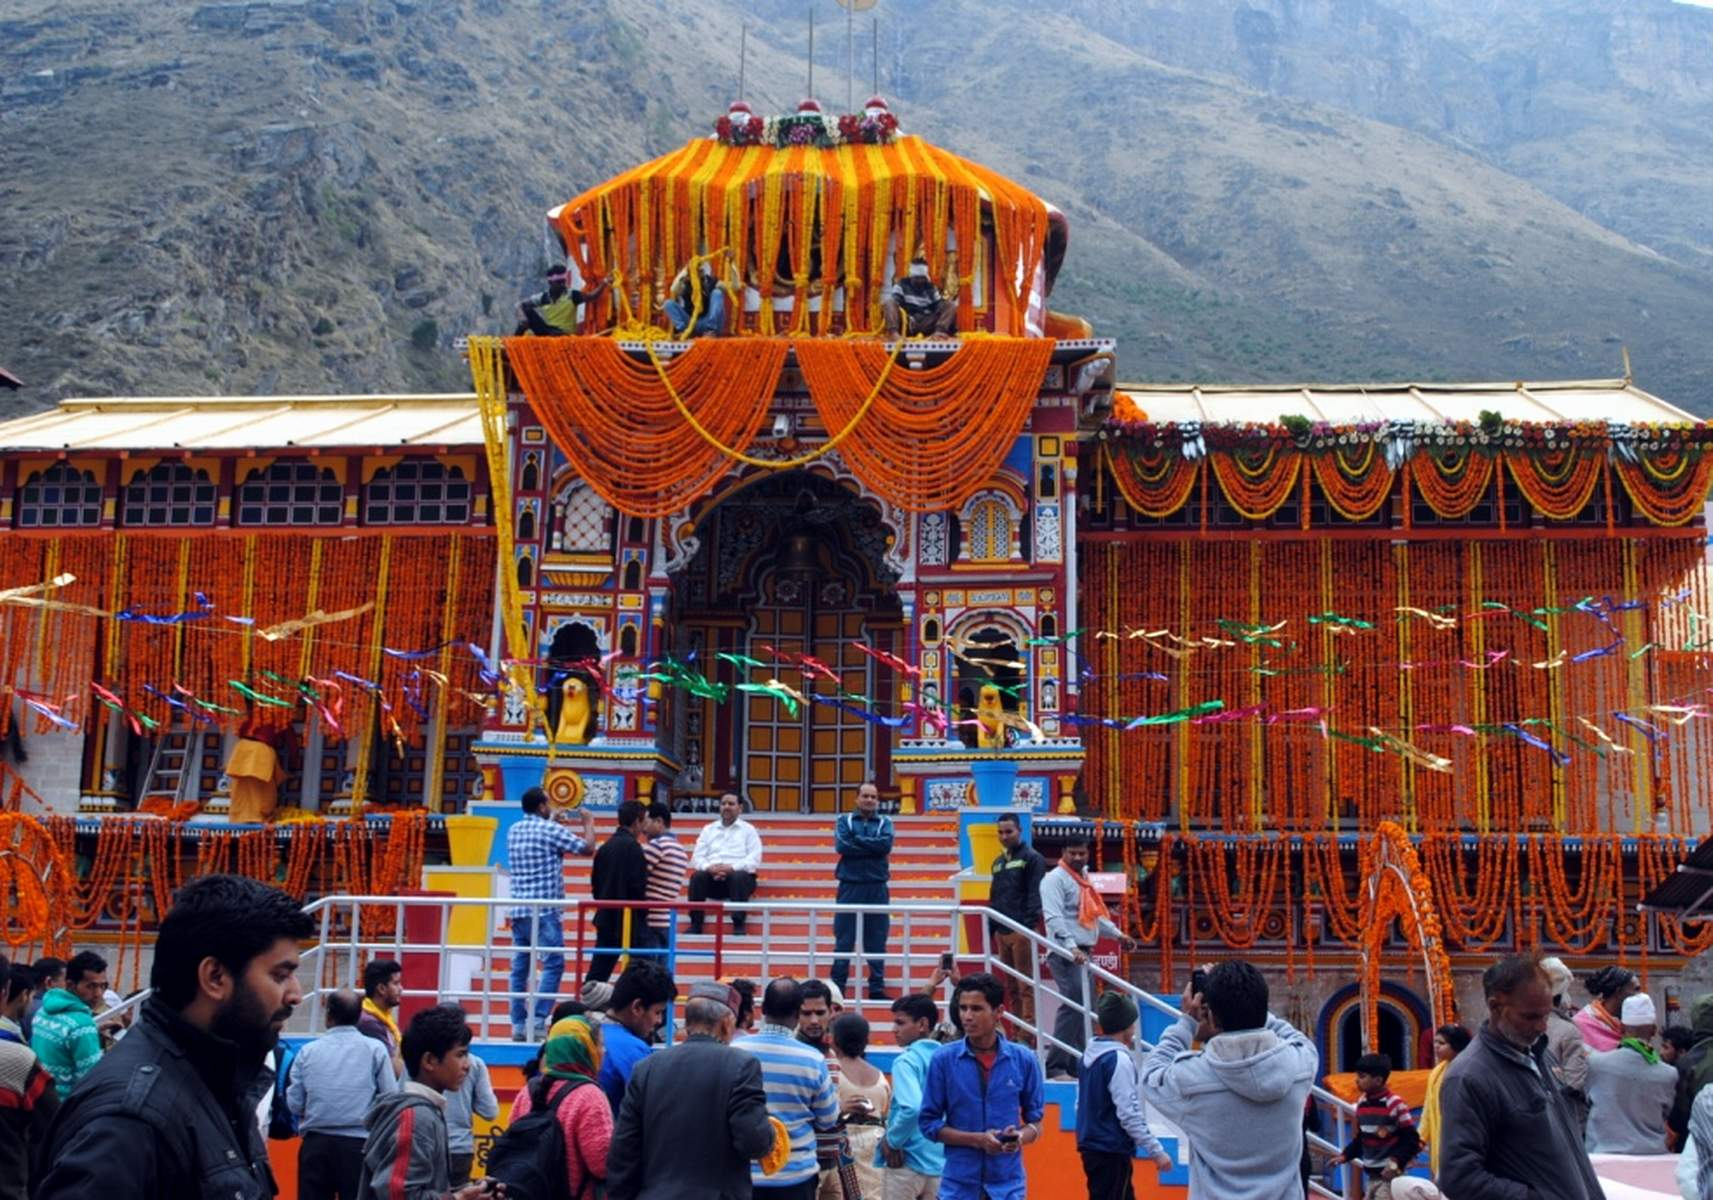 Char Dham Yatra, chota char dham, chardham, chardham yatra package, chardham tour package, chardham yatra by helicopter, yatra char dham, chardham tour, chardham package, Char Dham India Tour Packages